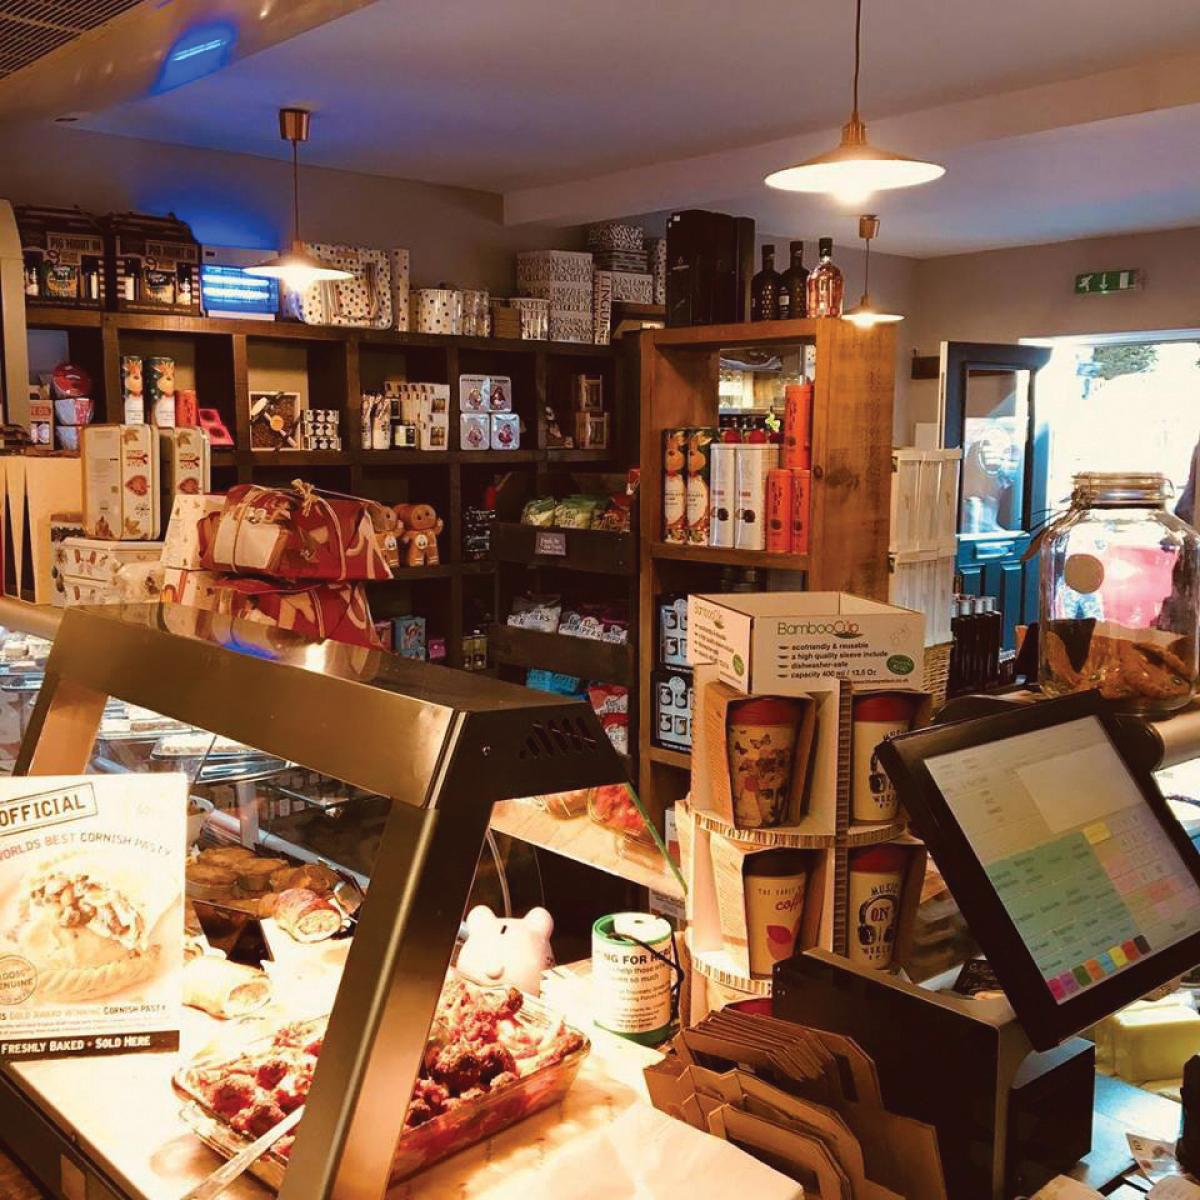 Images from No. 11 deli